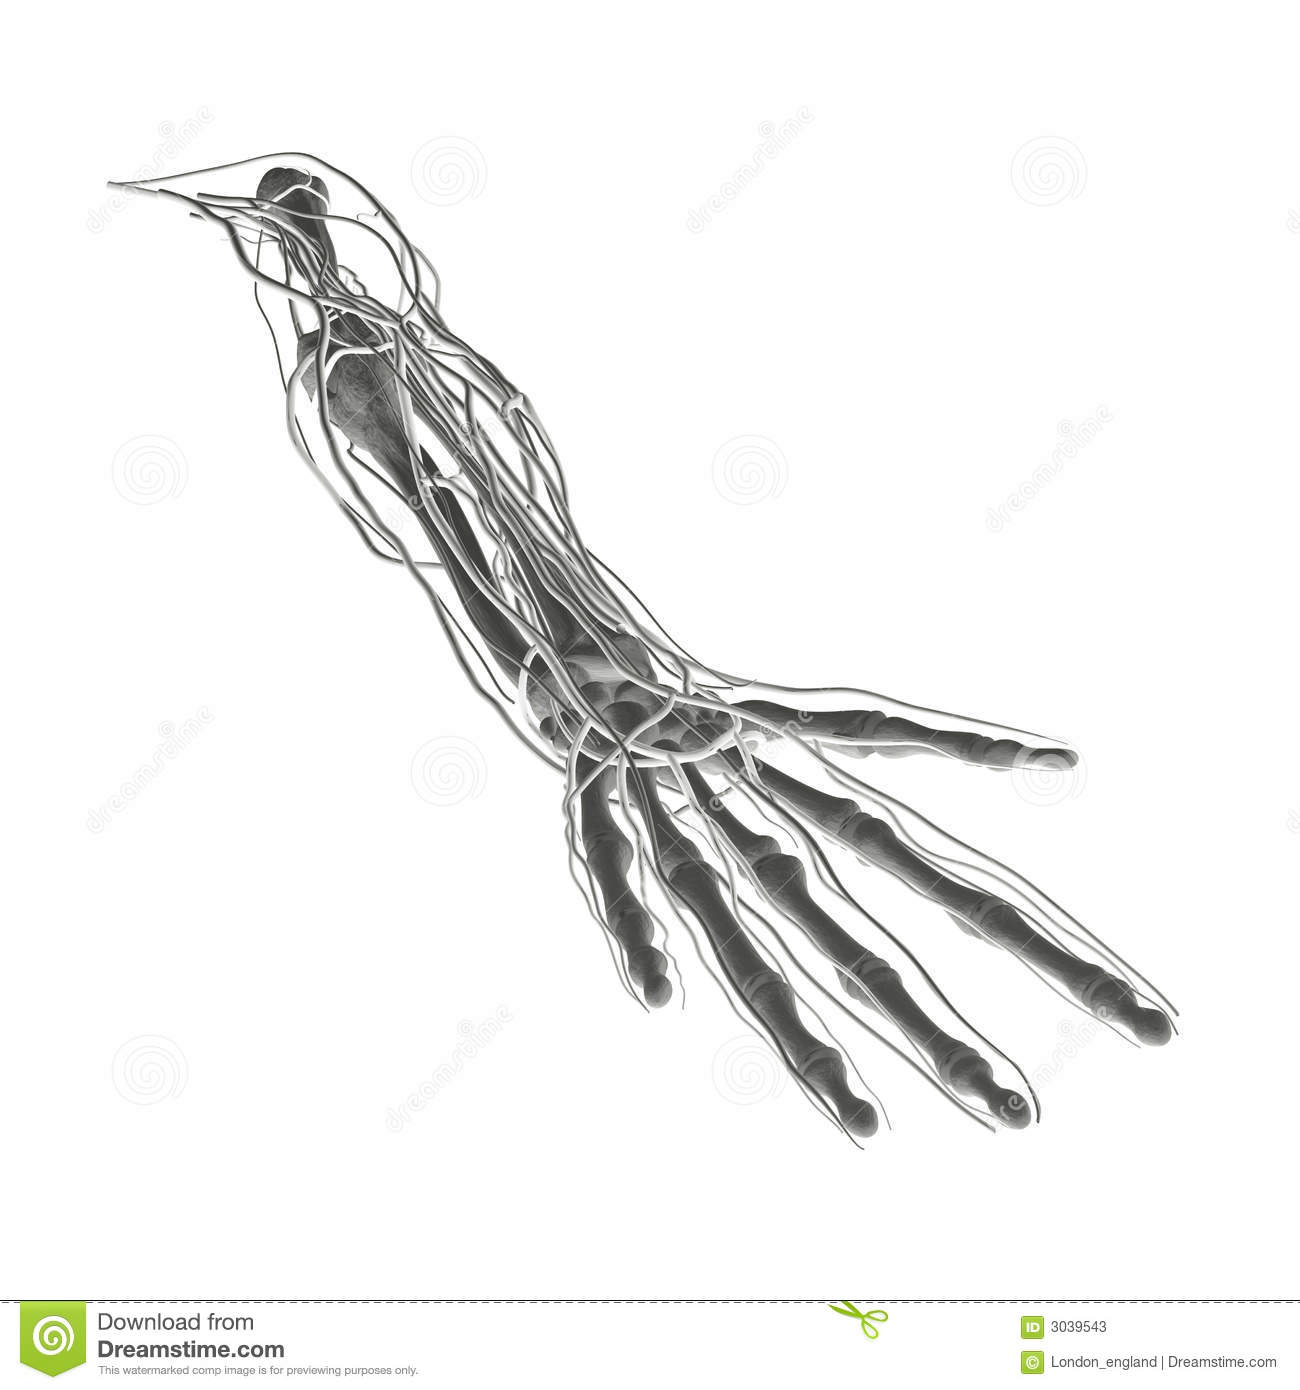 X Ray Bones Arteries Veins Stock Illustration